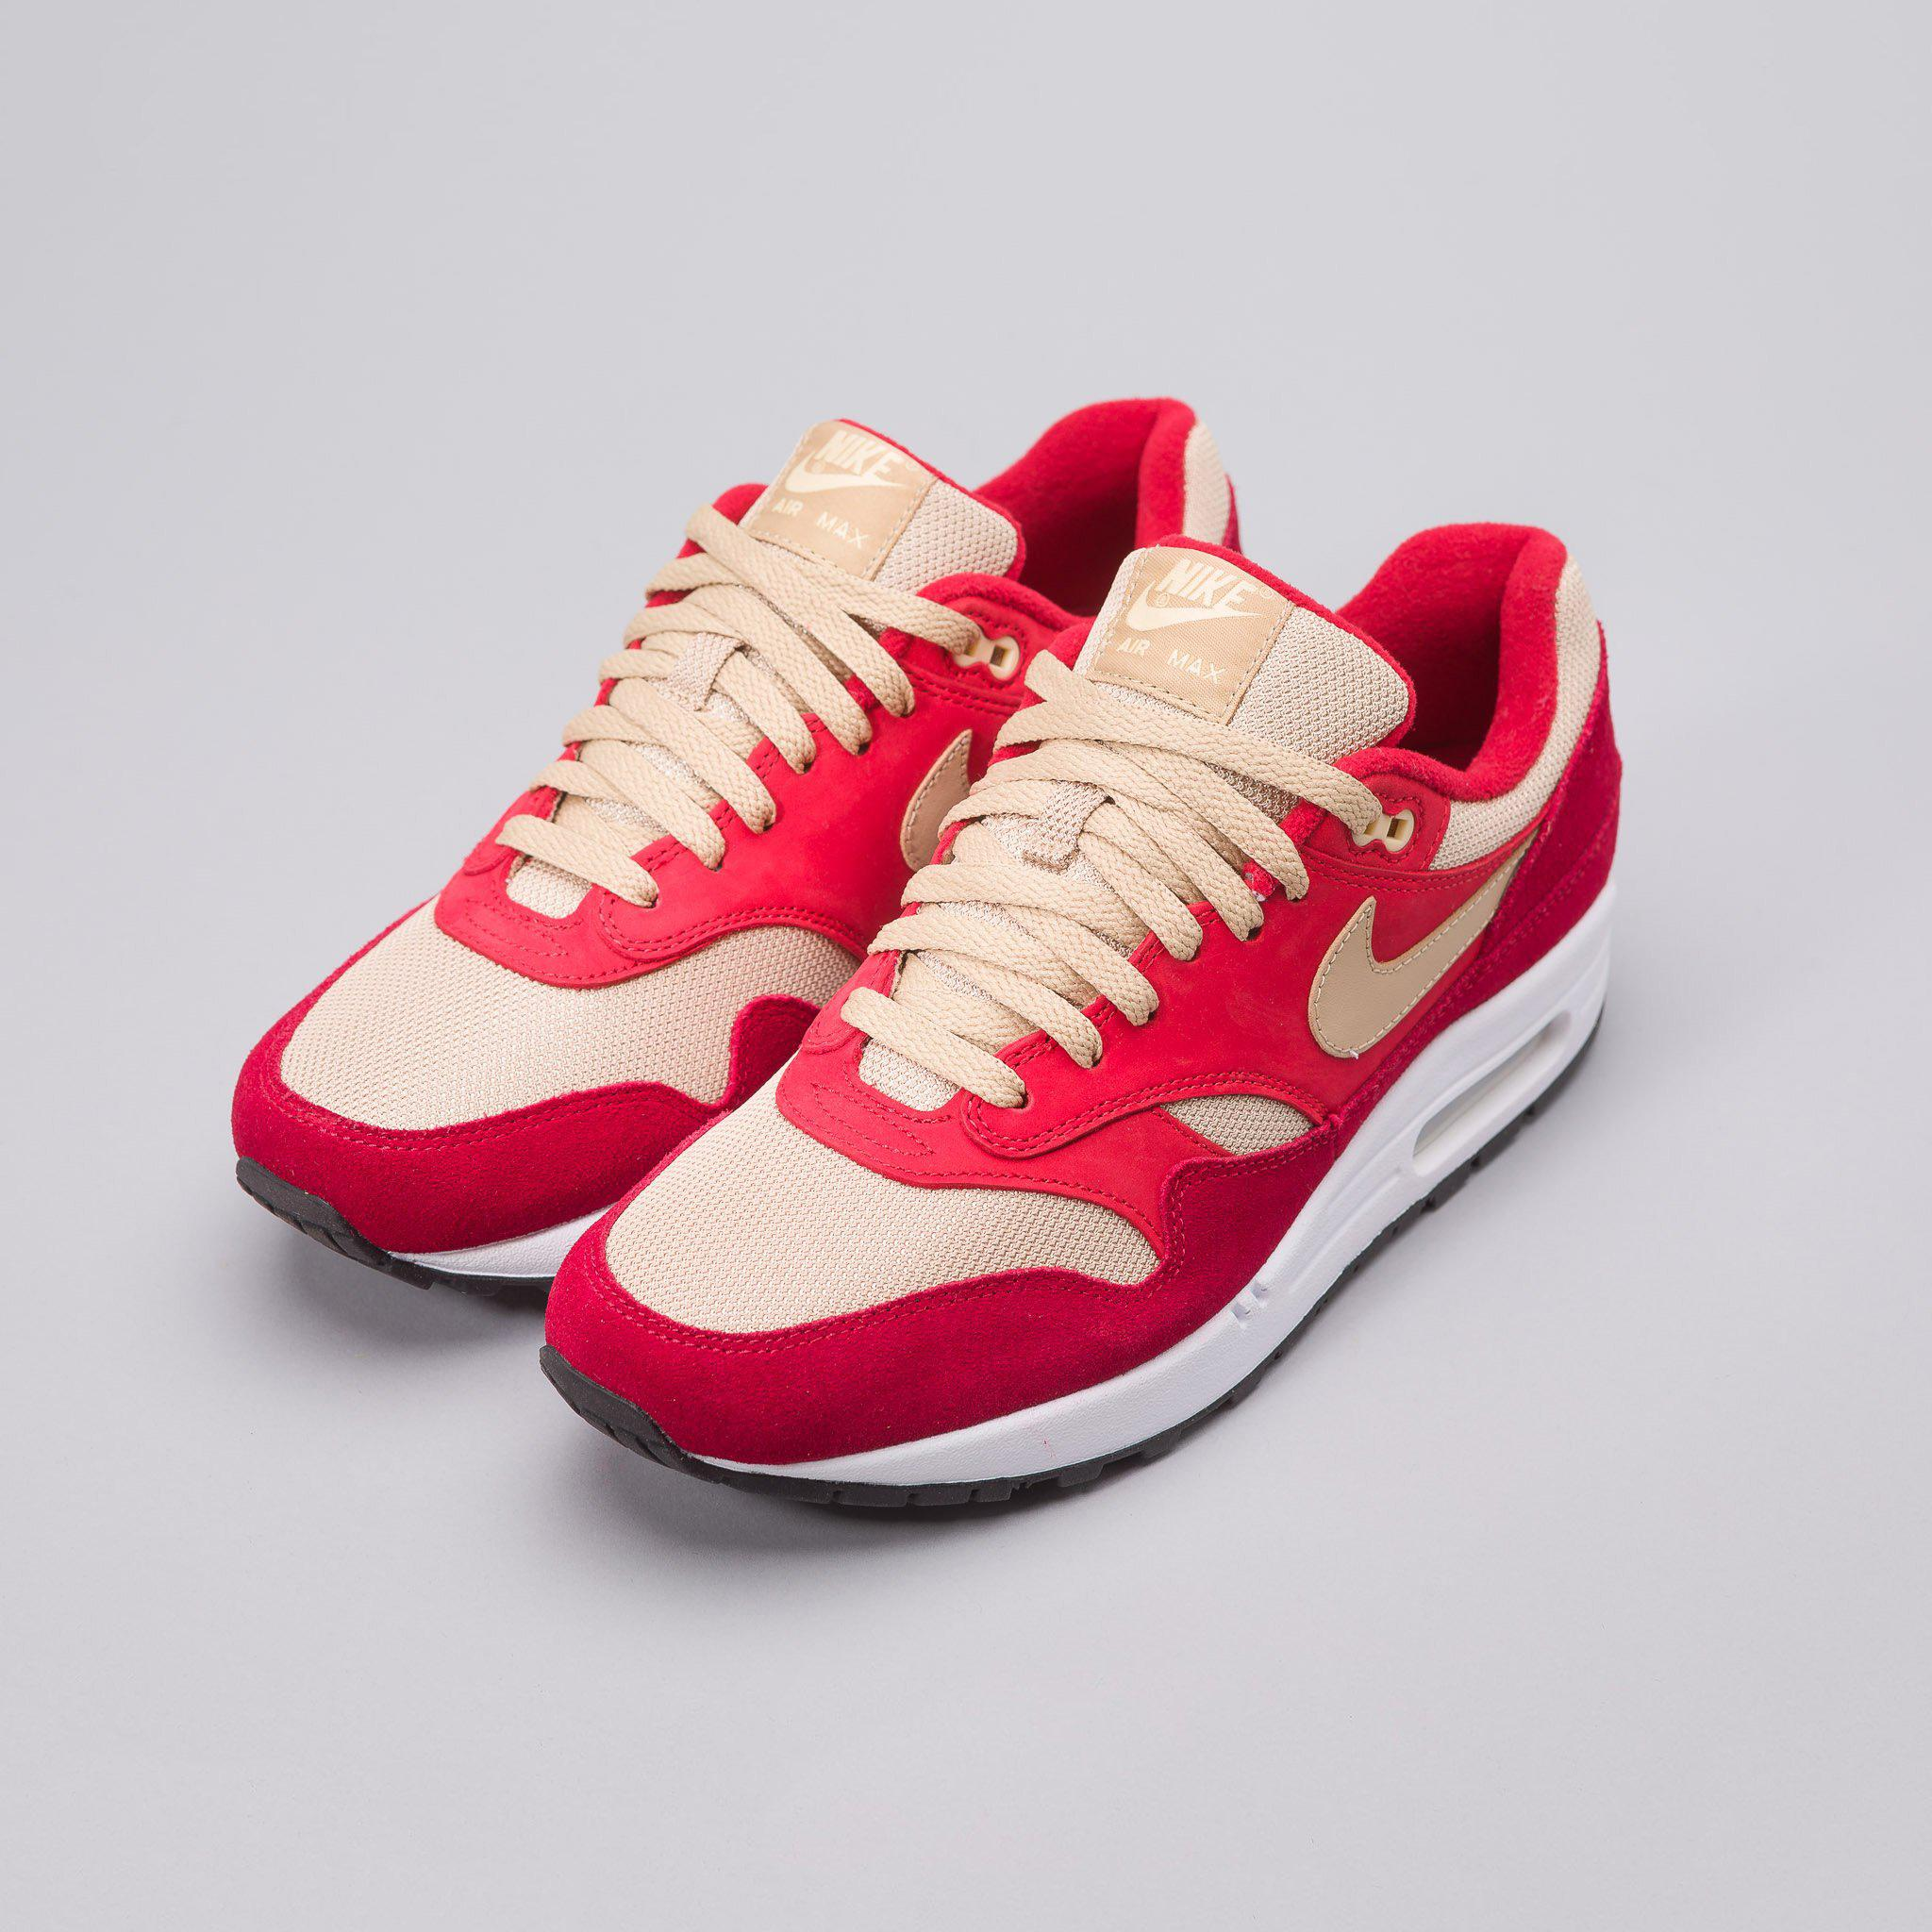 brand new b1c95 eeabe Nike X Atmos Air Max 1 Premium Retro Red Curry in Red for Men - Lyst